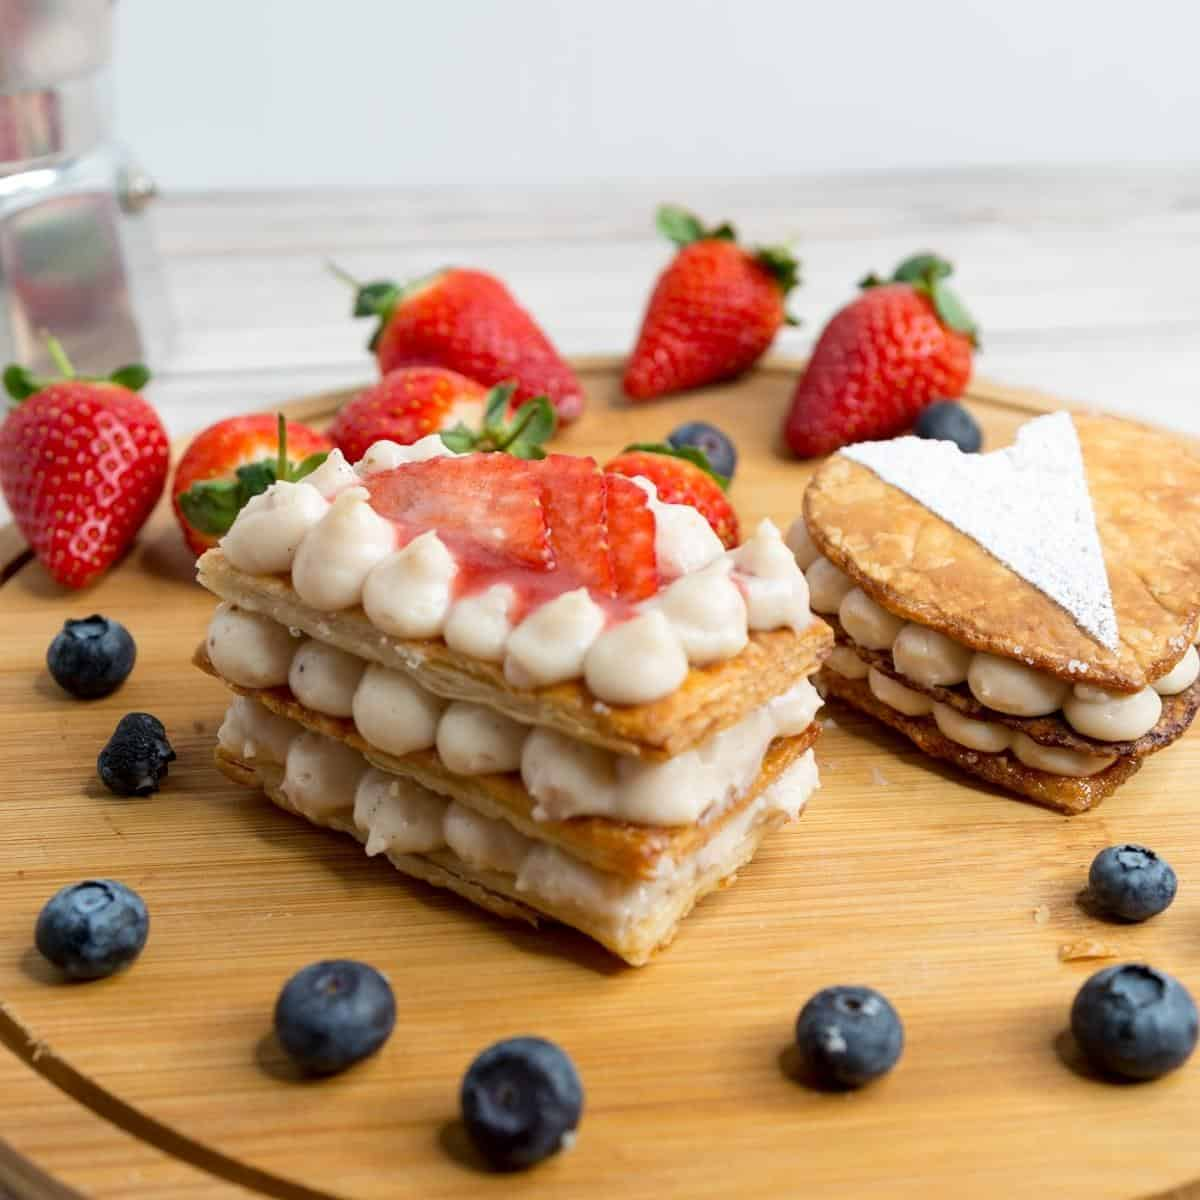 Two Mille Feuille on a wooden board with fruits